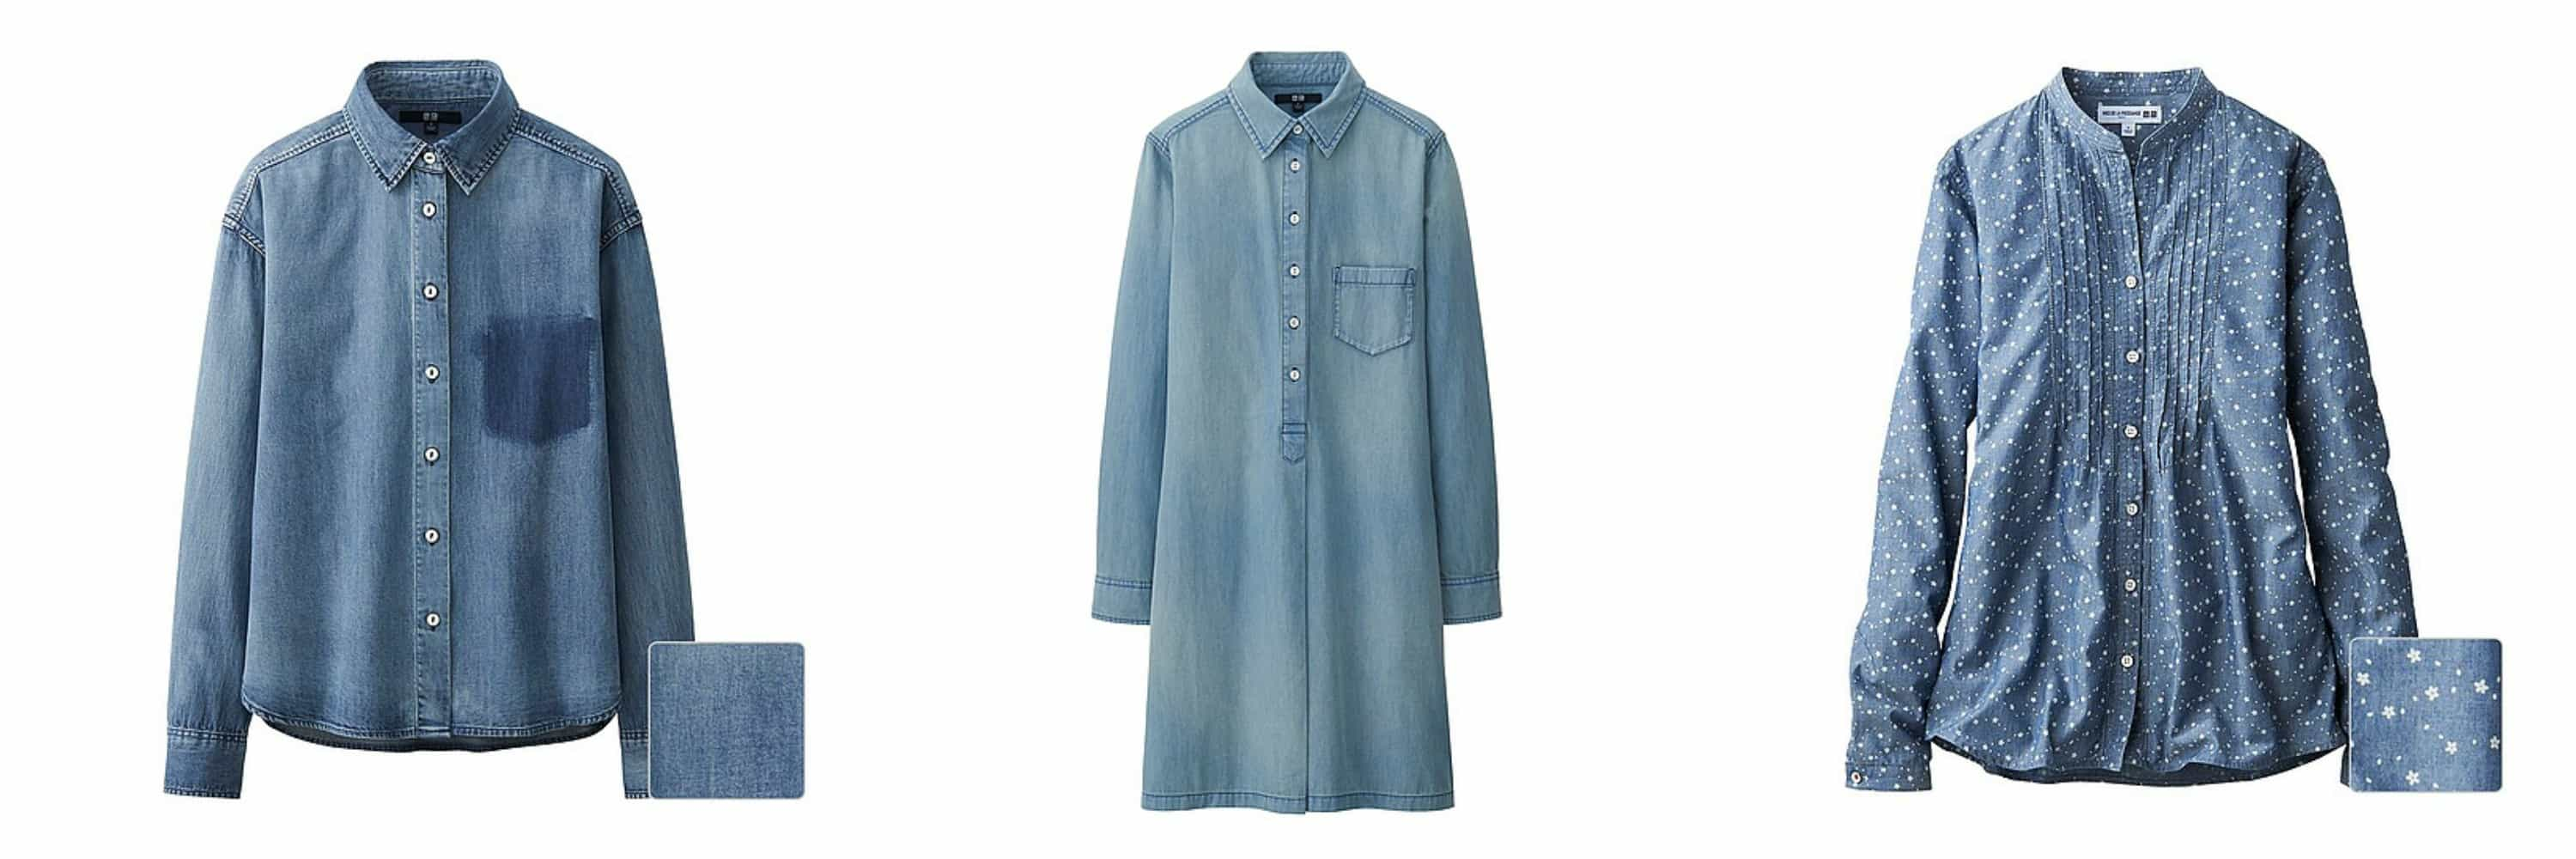 1dafe63c1d3 ... shirt dress (below) which I would belt and wear over the white selvage  jeans on a fresh Spring day and then with bare legs when the temperature  rises.